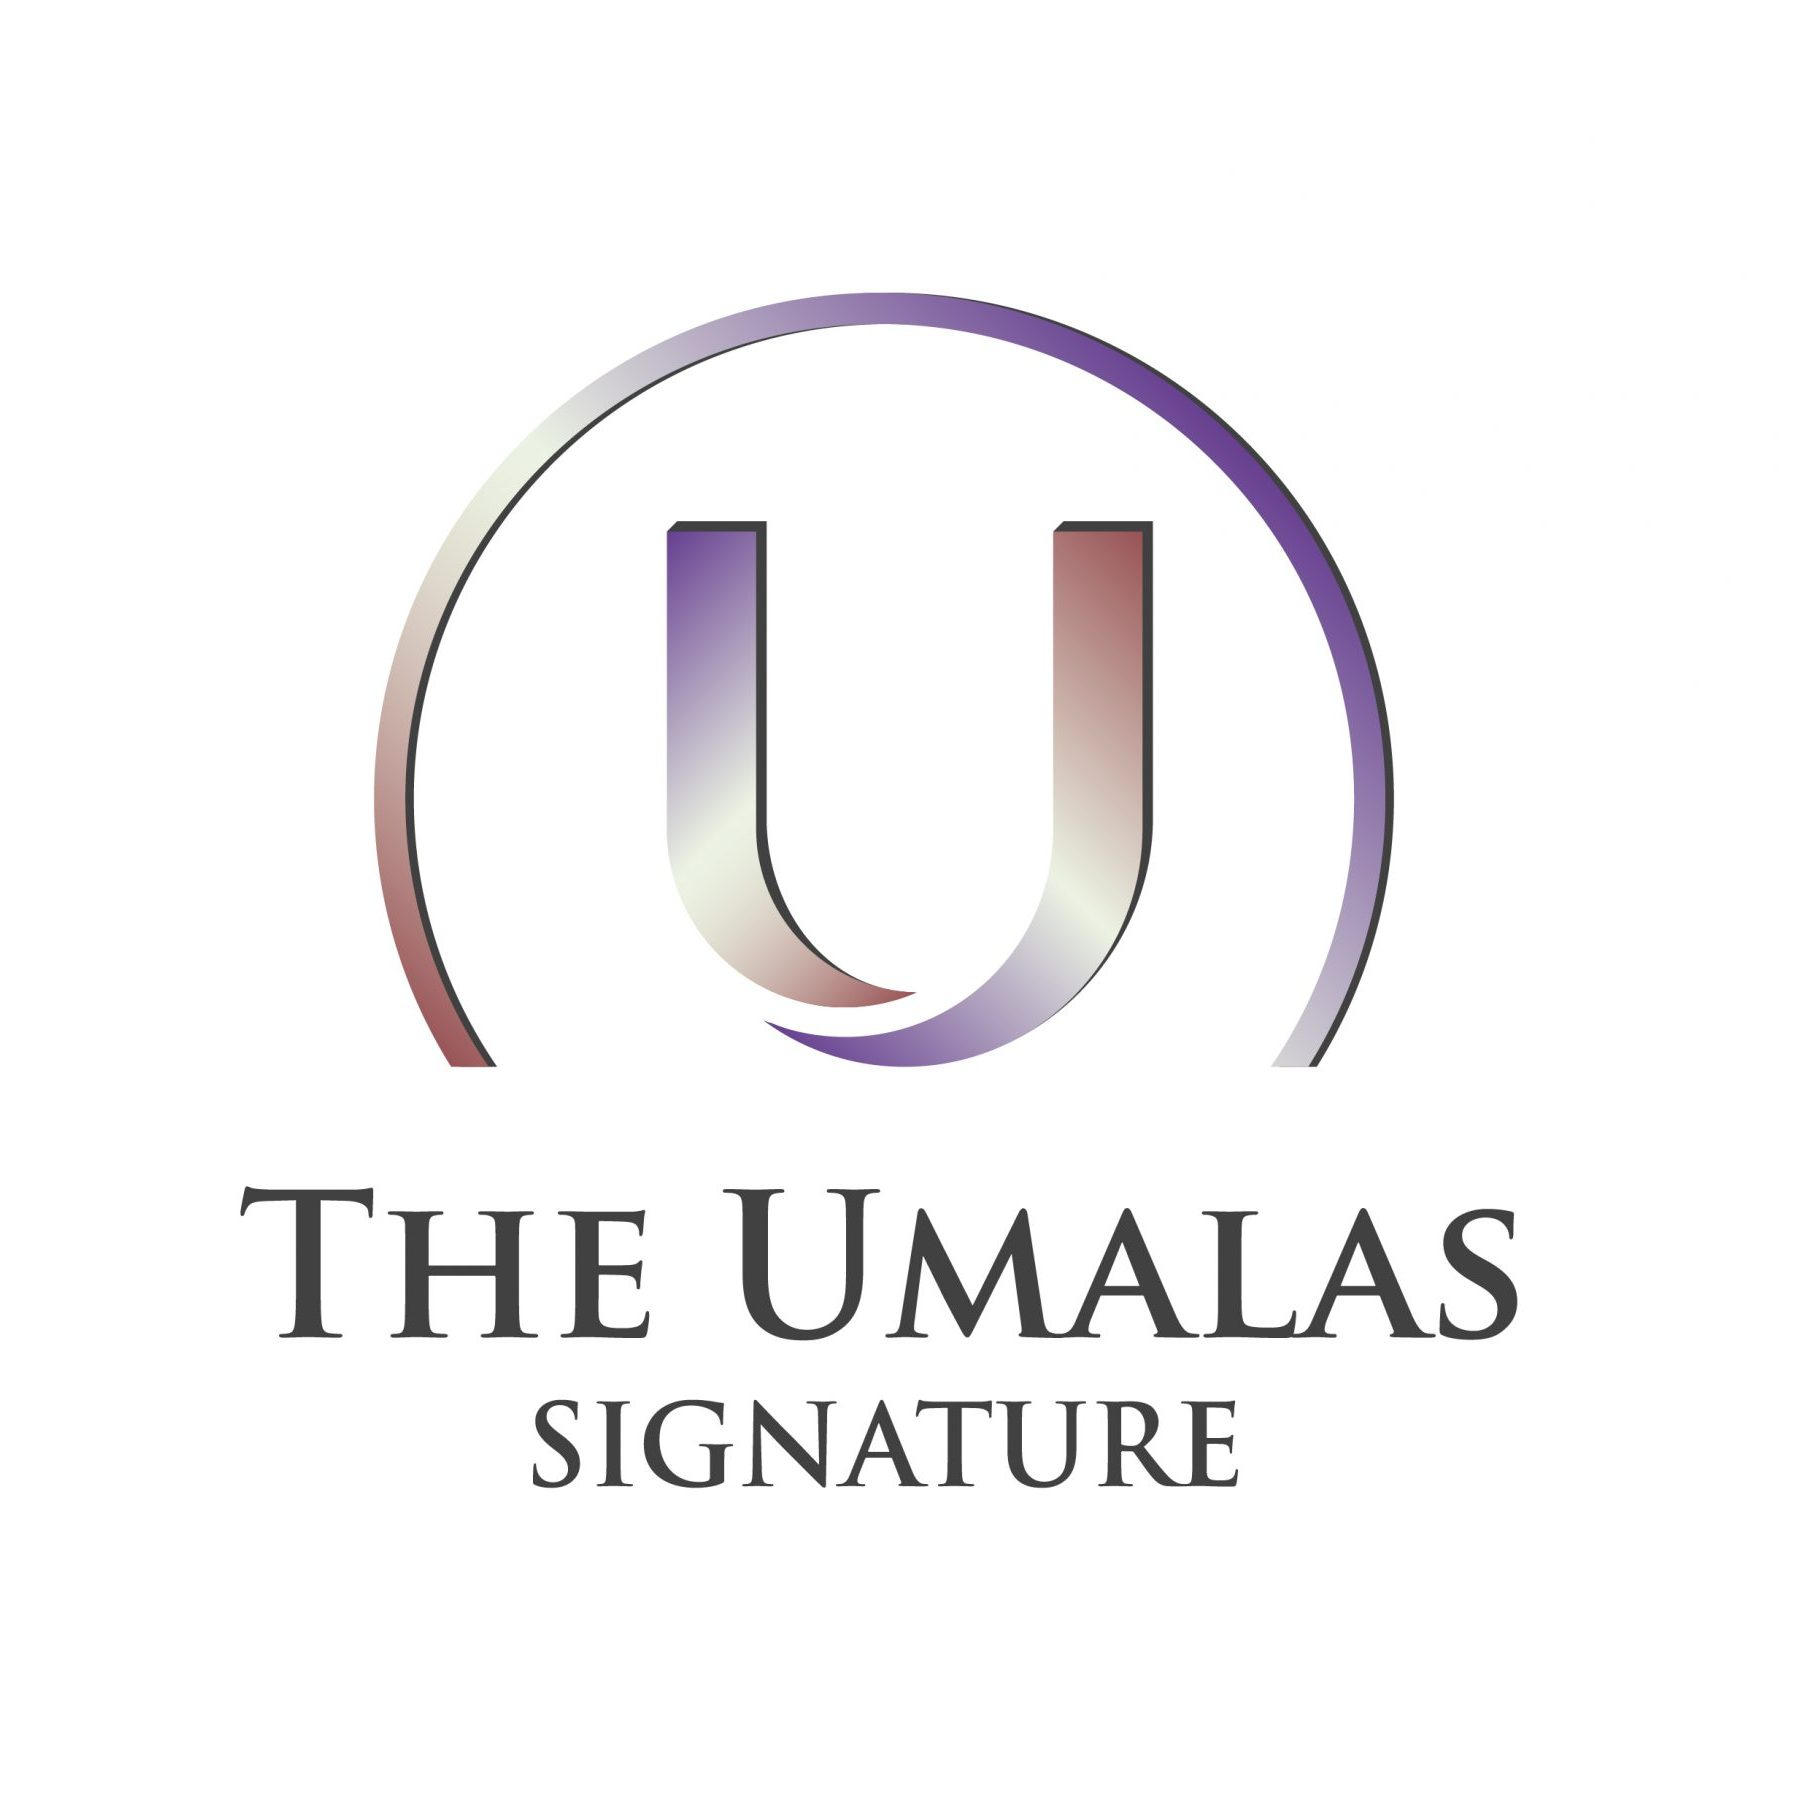 The Umalas Signature